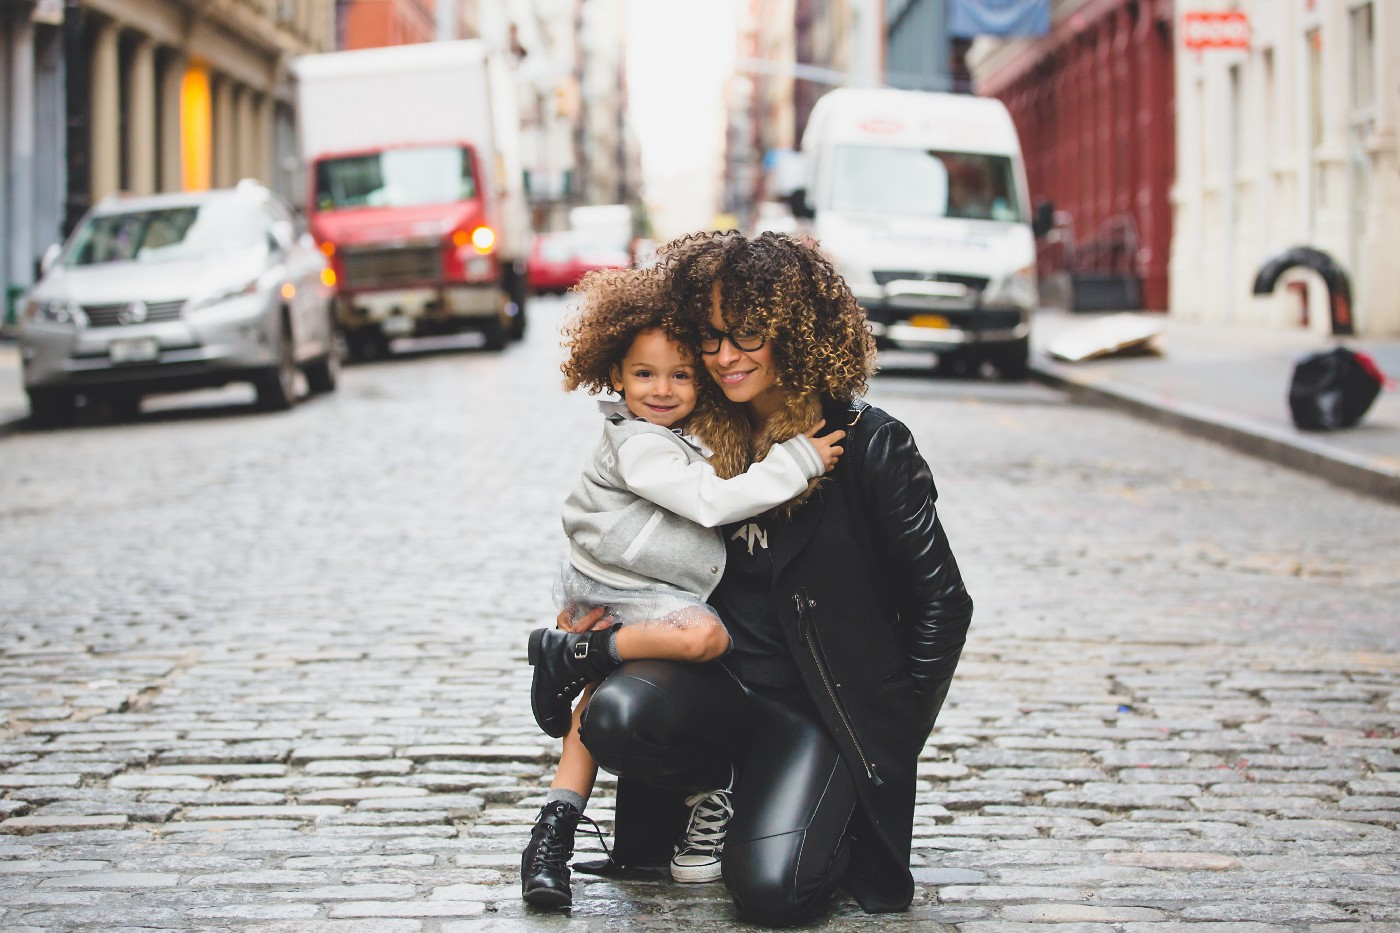 f39f963ca4b How to Stop Suffering From 'Mom Guilt' - Thrive Global - Medium